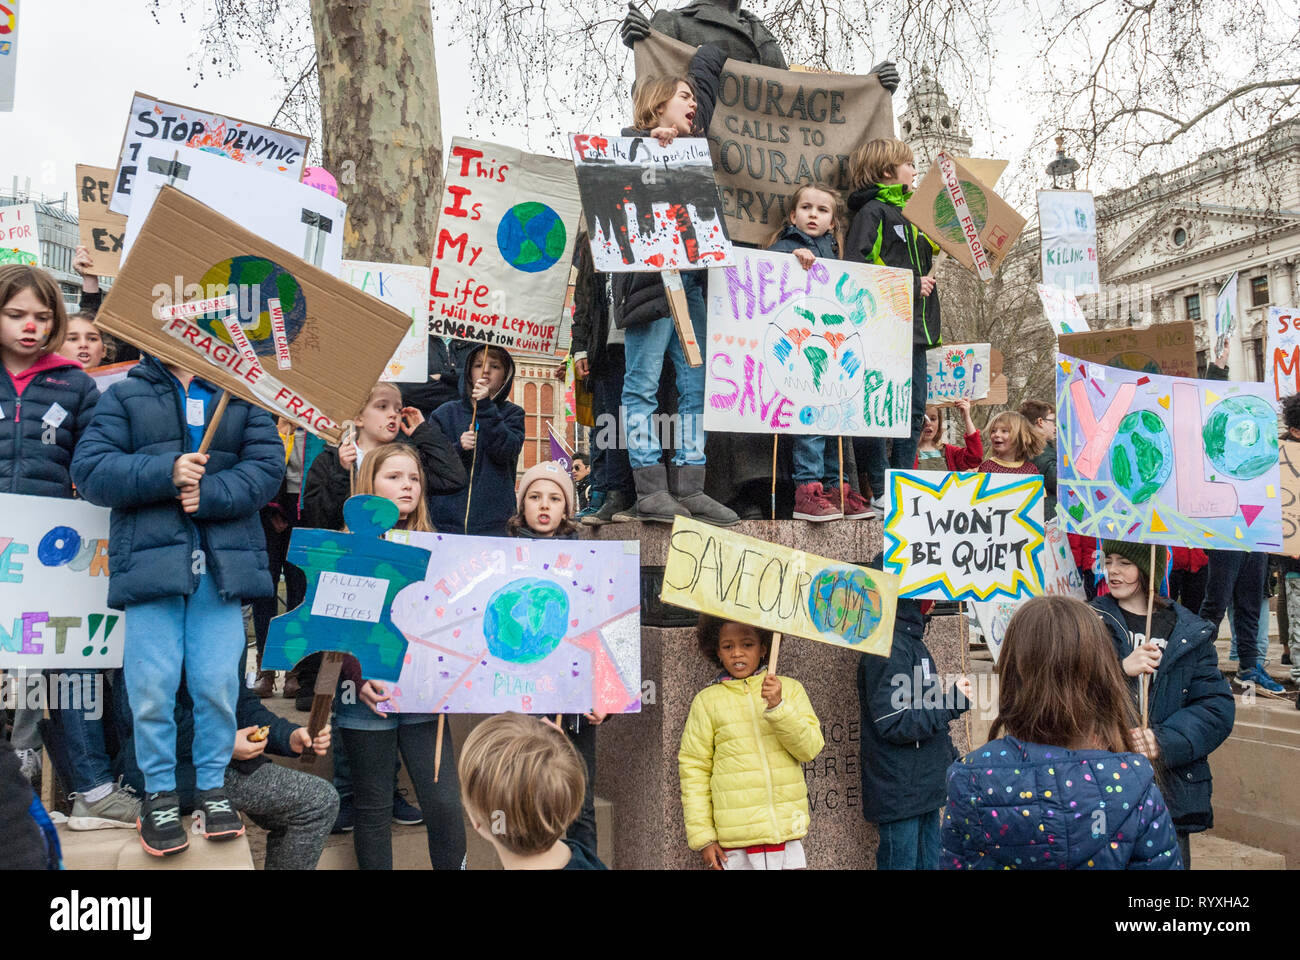 London, UK. 15th March, 2019. School students campaigning against climate change protest outside Parliament. Credit: Maggie sully/Alamy Live News. School children on strike protest at climate change gathering in a lively rally outside Parliament, London. Many small girls and boys with colourful homemade banners and placards 'Help save the planet', 'I won't be quiet', 'This is my life', 'Save our home', among others, as they sing and shout their protests about the destruction of the planet - Stock Image